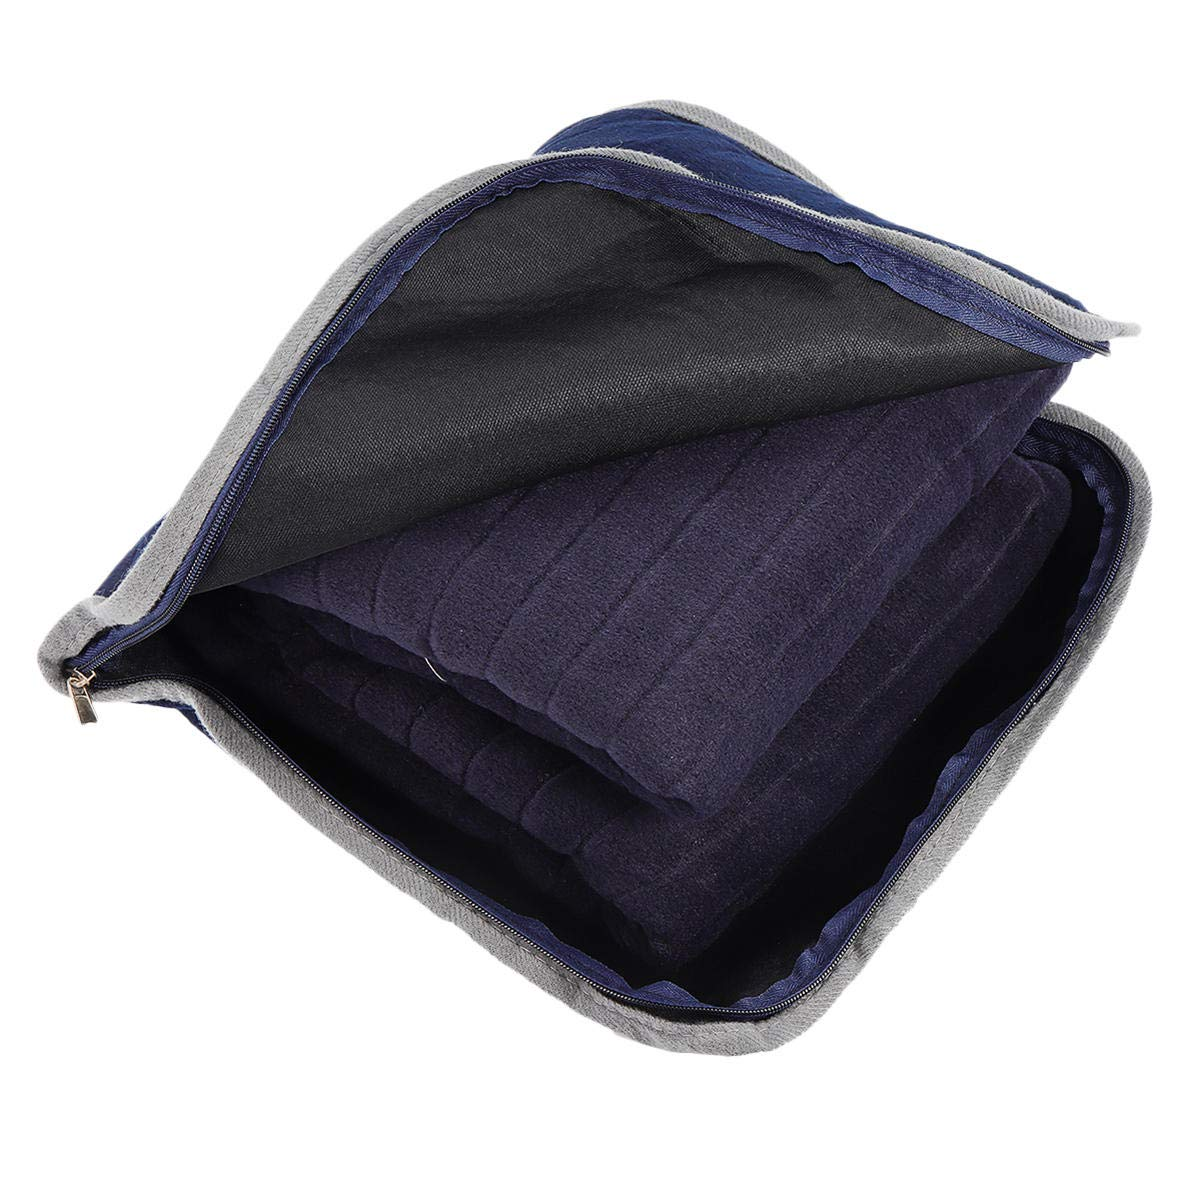 Navy Blue Warm Blanket - Sports & Outdoor - 1PCs by Unknown (Image #4)